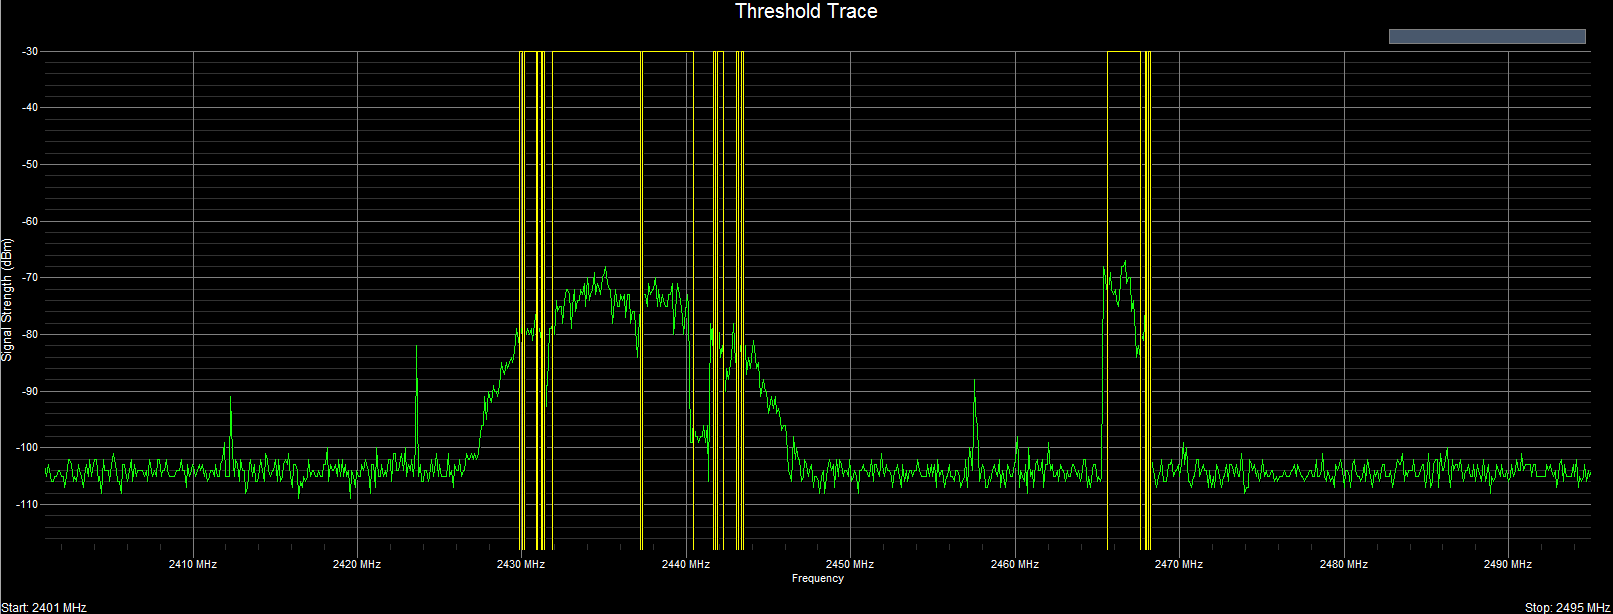 WiFi Surveyor -- Threshold Trace